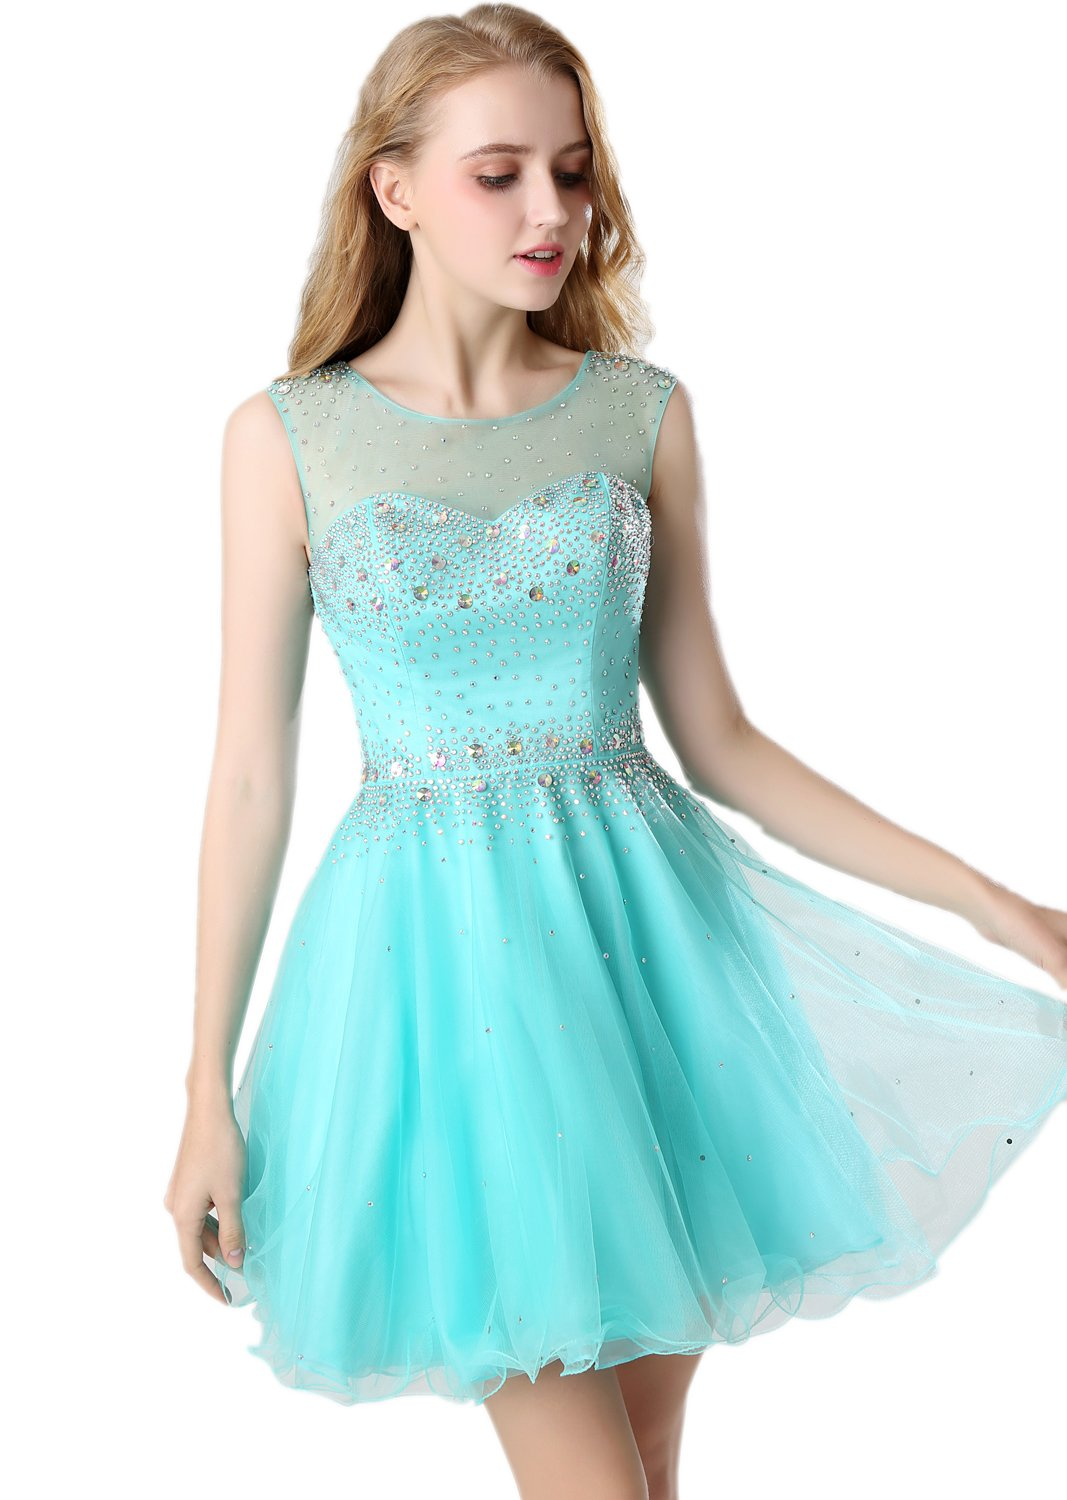 Belle House Homecoming Dresses 2018 Short For Juniors Tulle Mint cheep Party Cocktail Prom Dress Ball Gown